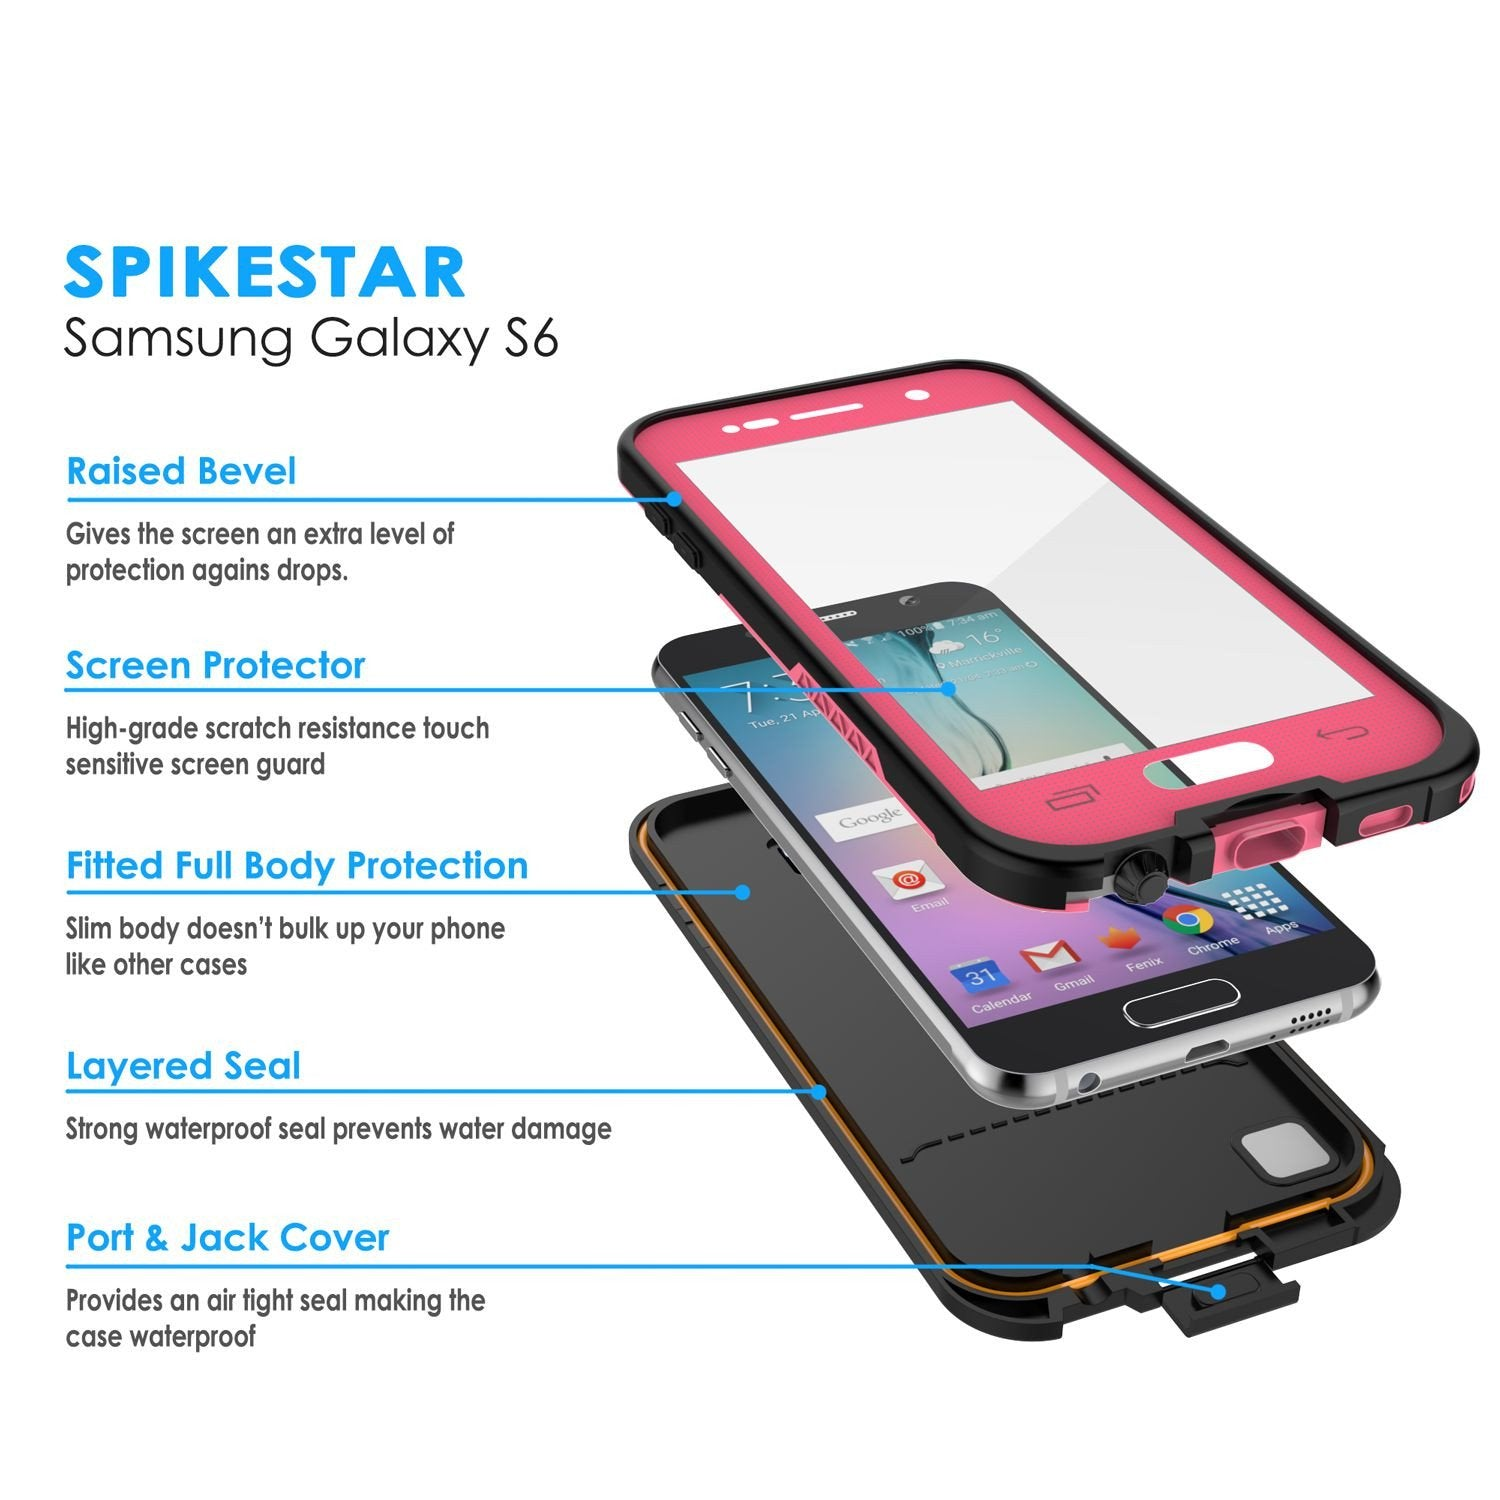 Galaxy S6 Waterproof Case, Punkcase SpikeStar Pink Water/Shock/Dirt/Snow Proof | Lifetime Warranty